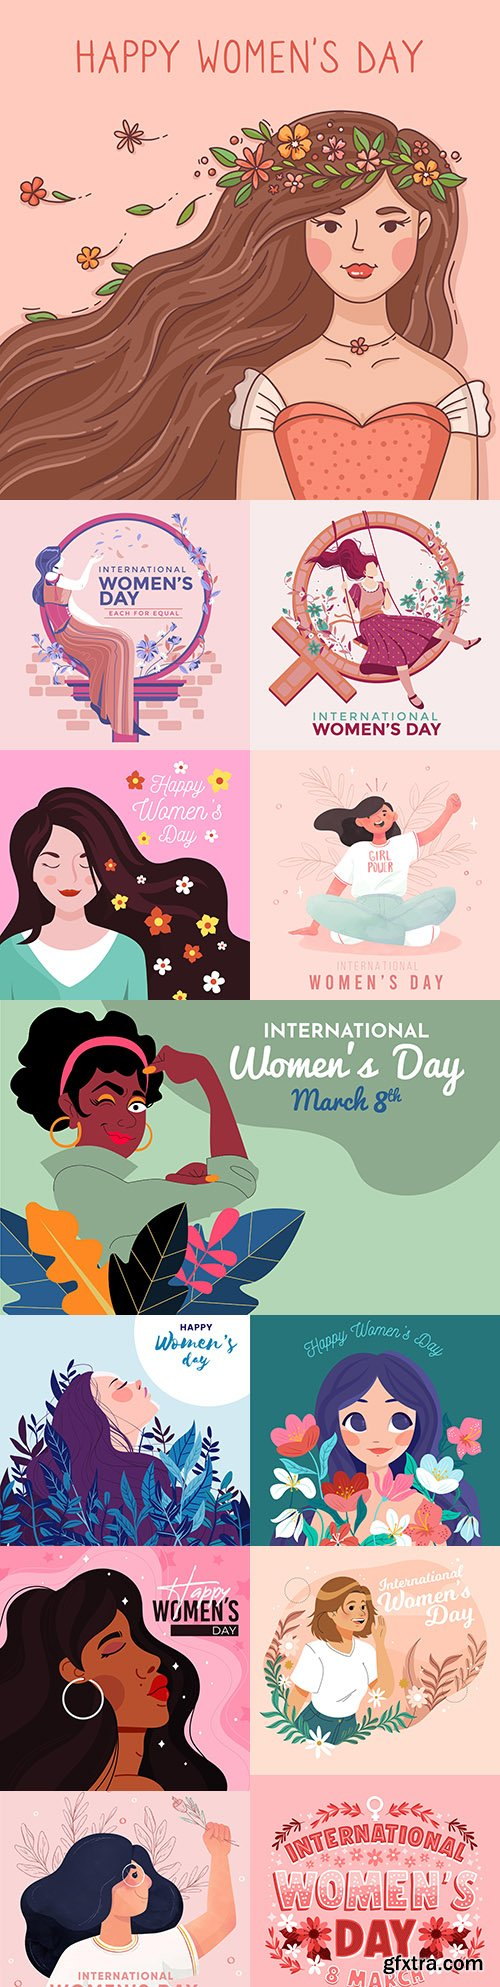 Happy Women's Day March 8 design illustrations 5